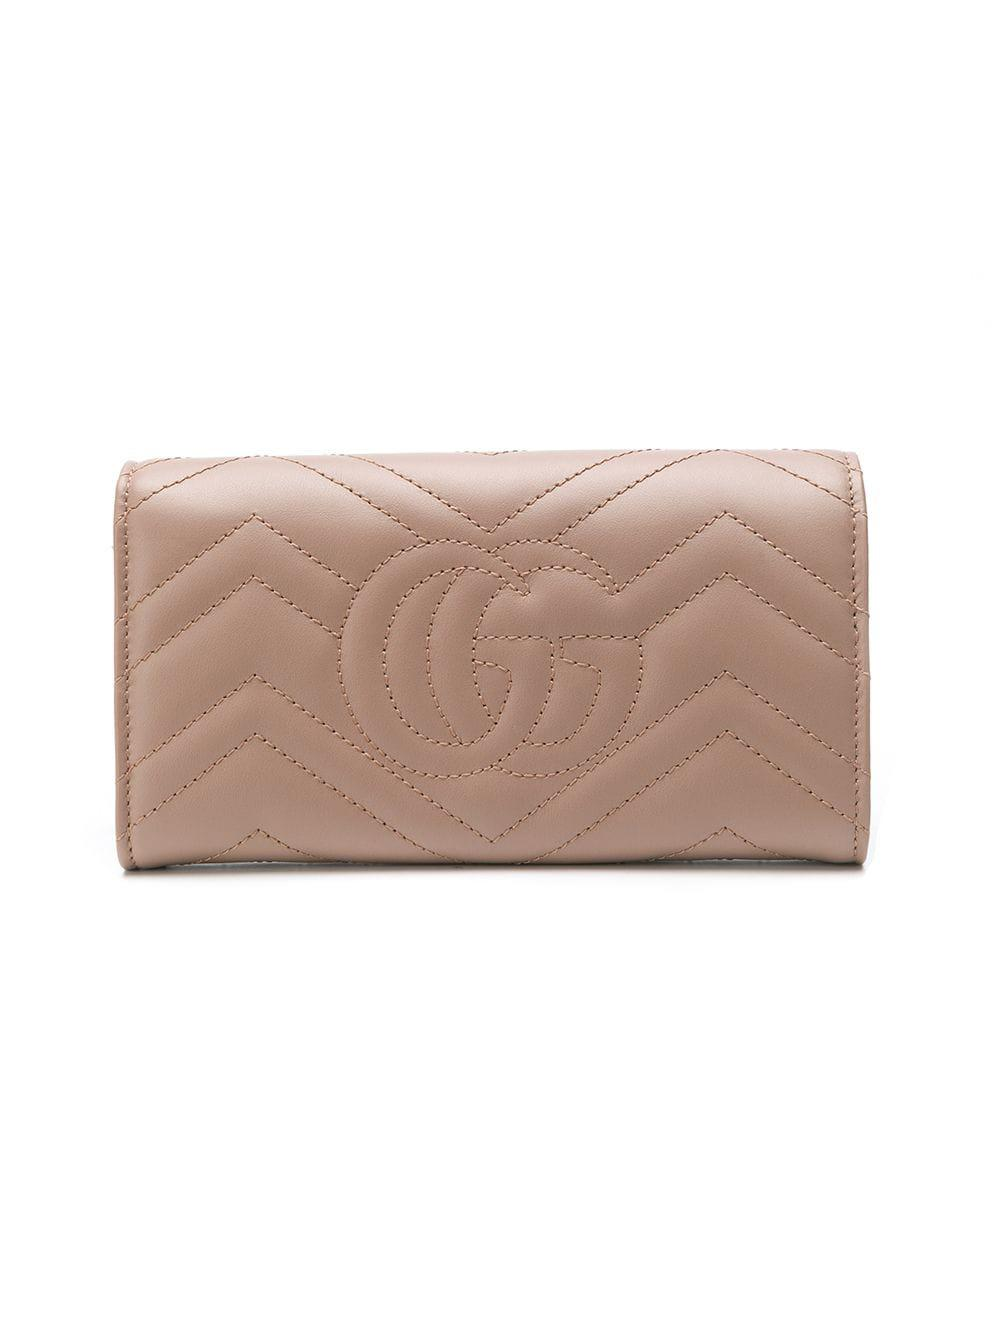 0d4276b05f18 Gucci GG Marmont Continental Wallet - Lyst